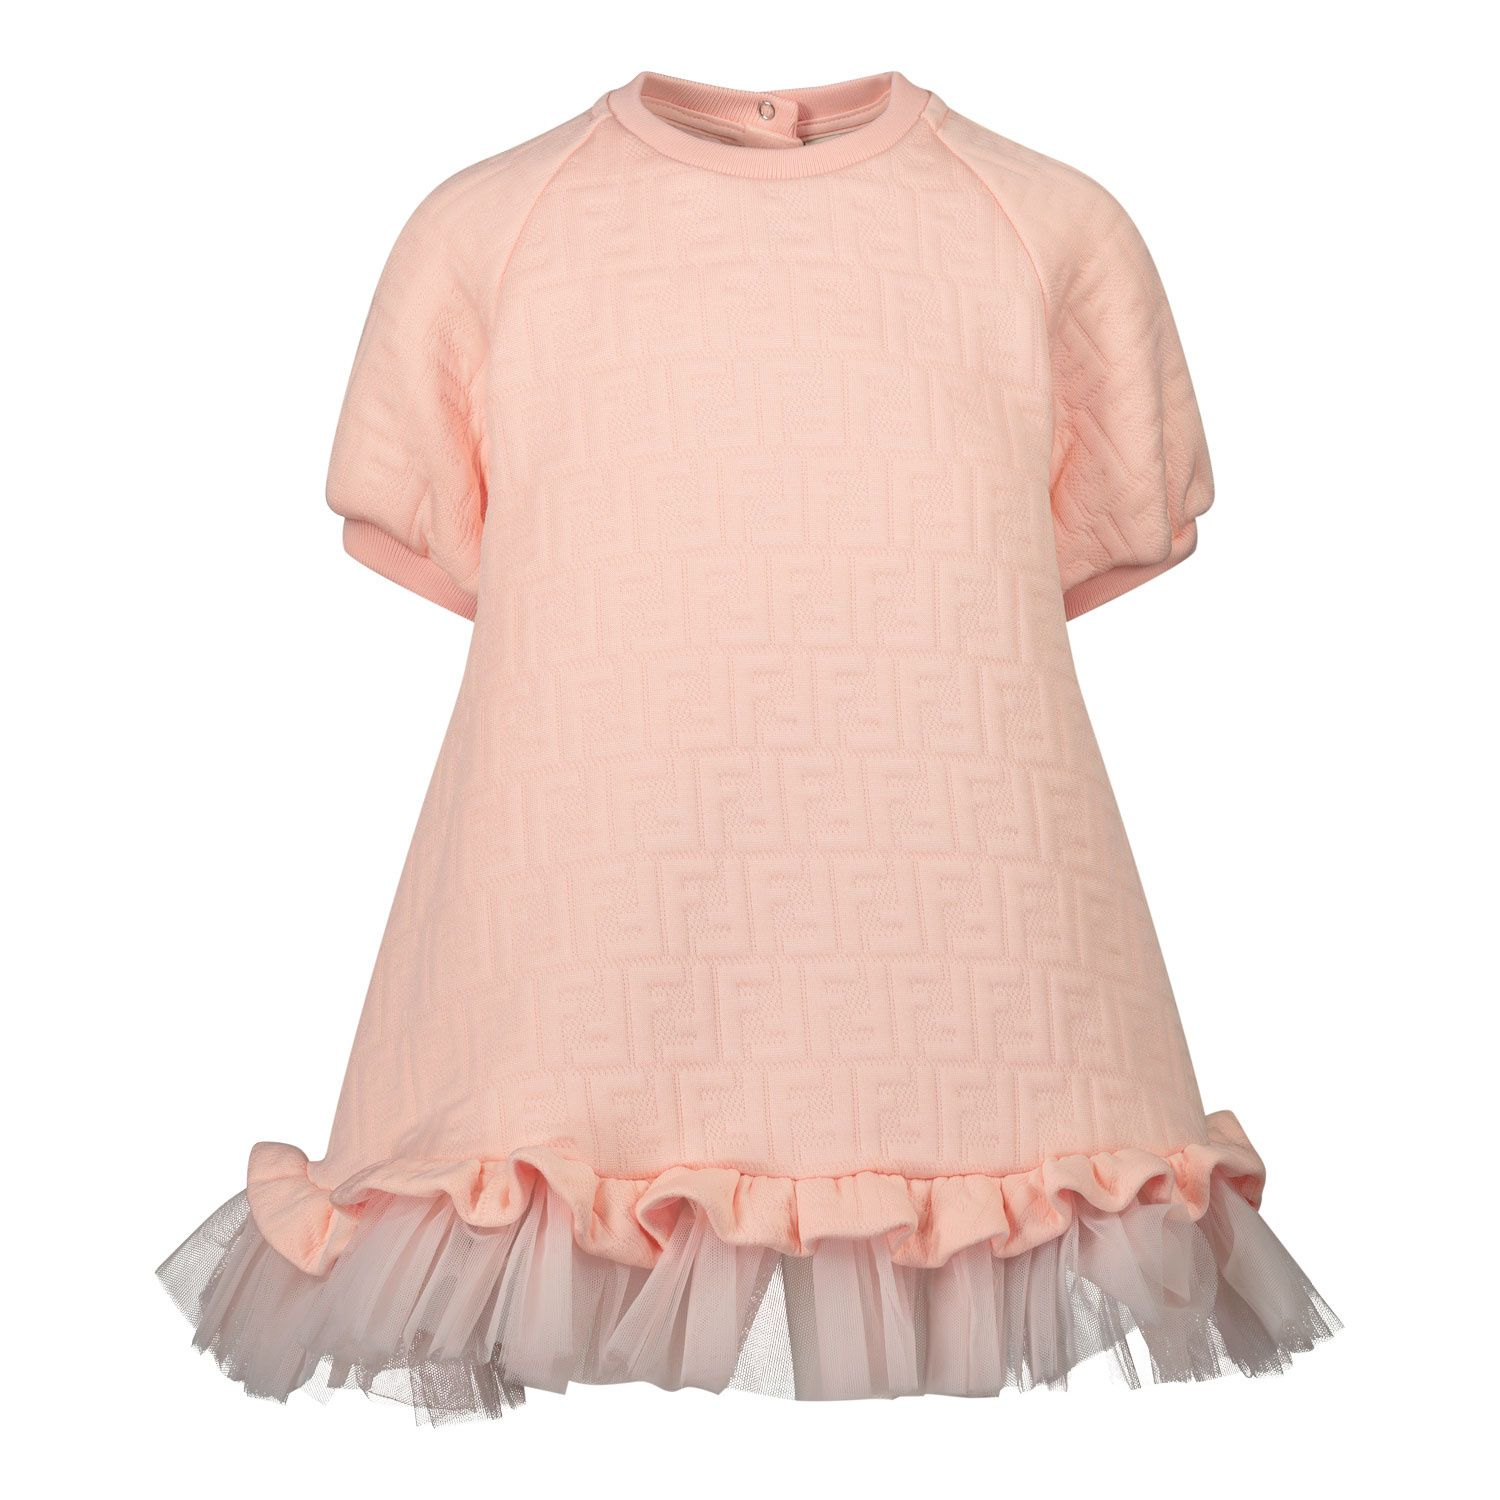 Picture of Fendi BFB332 baby dress light pink